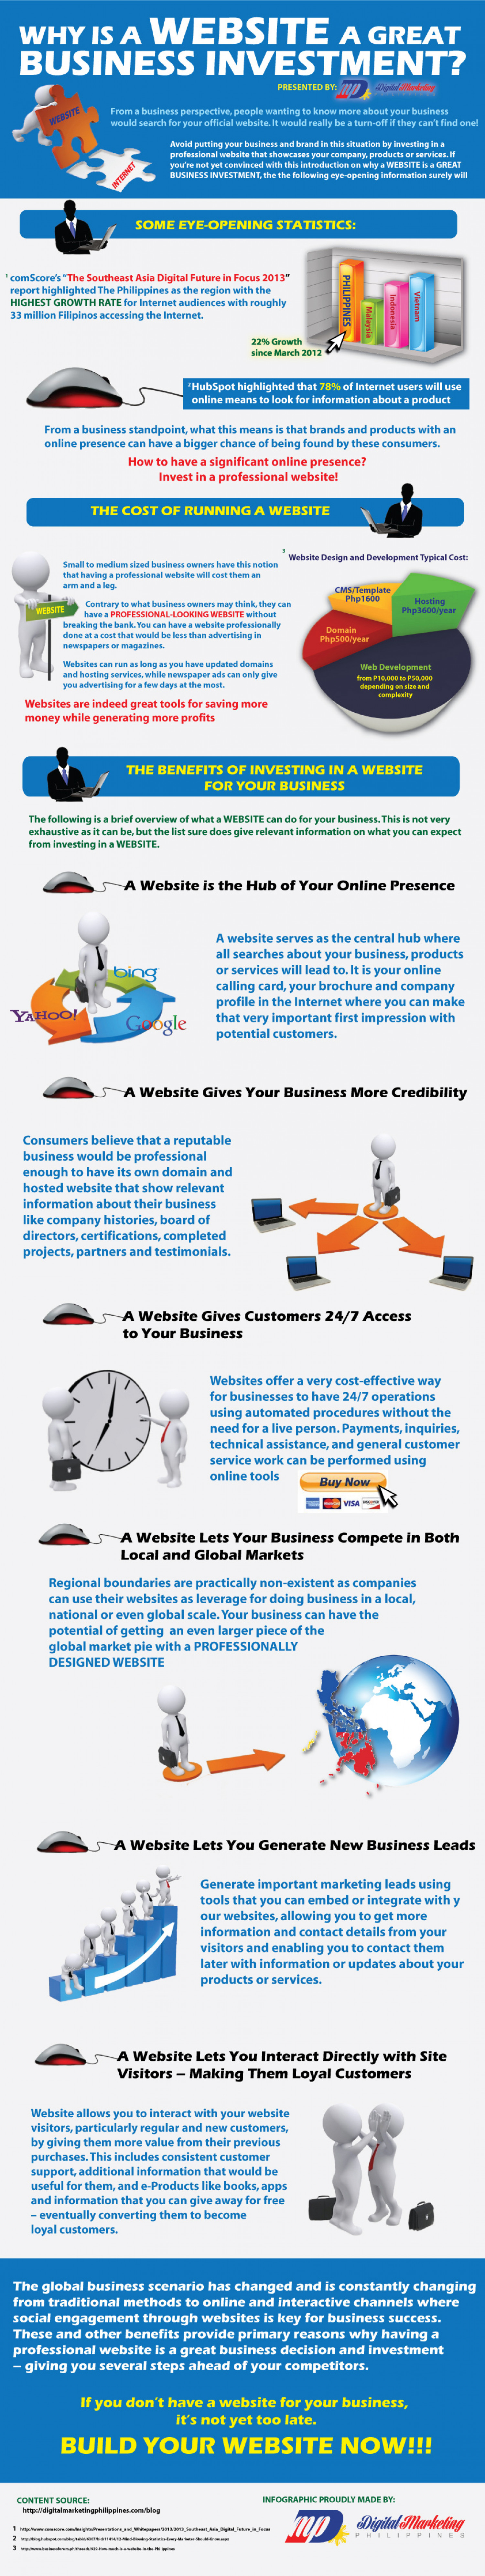 Why is a Website a Great Business Investment? Infographic